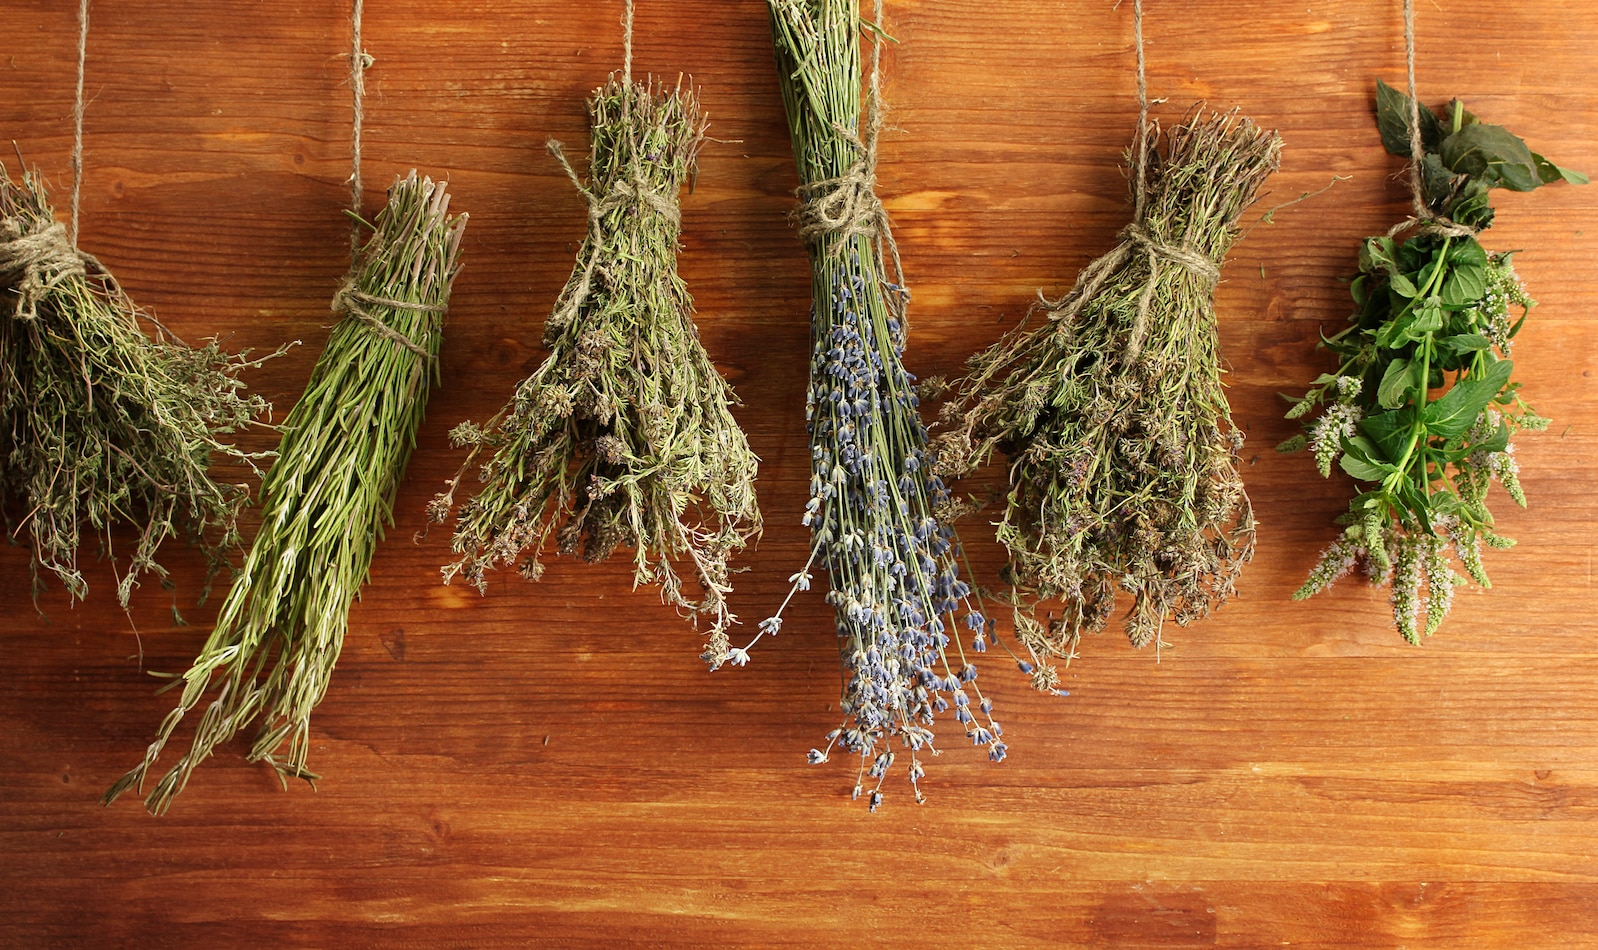 How to rehydrate herbs